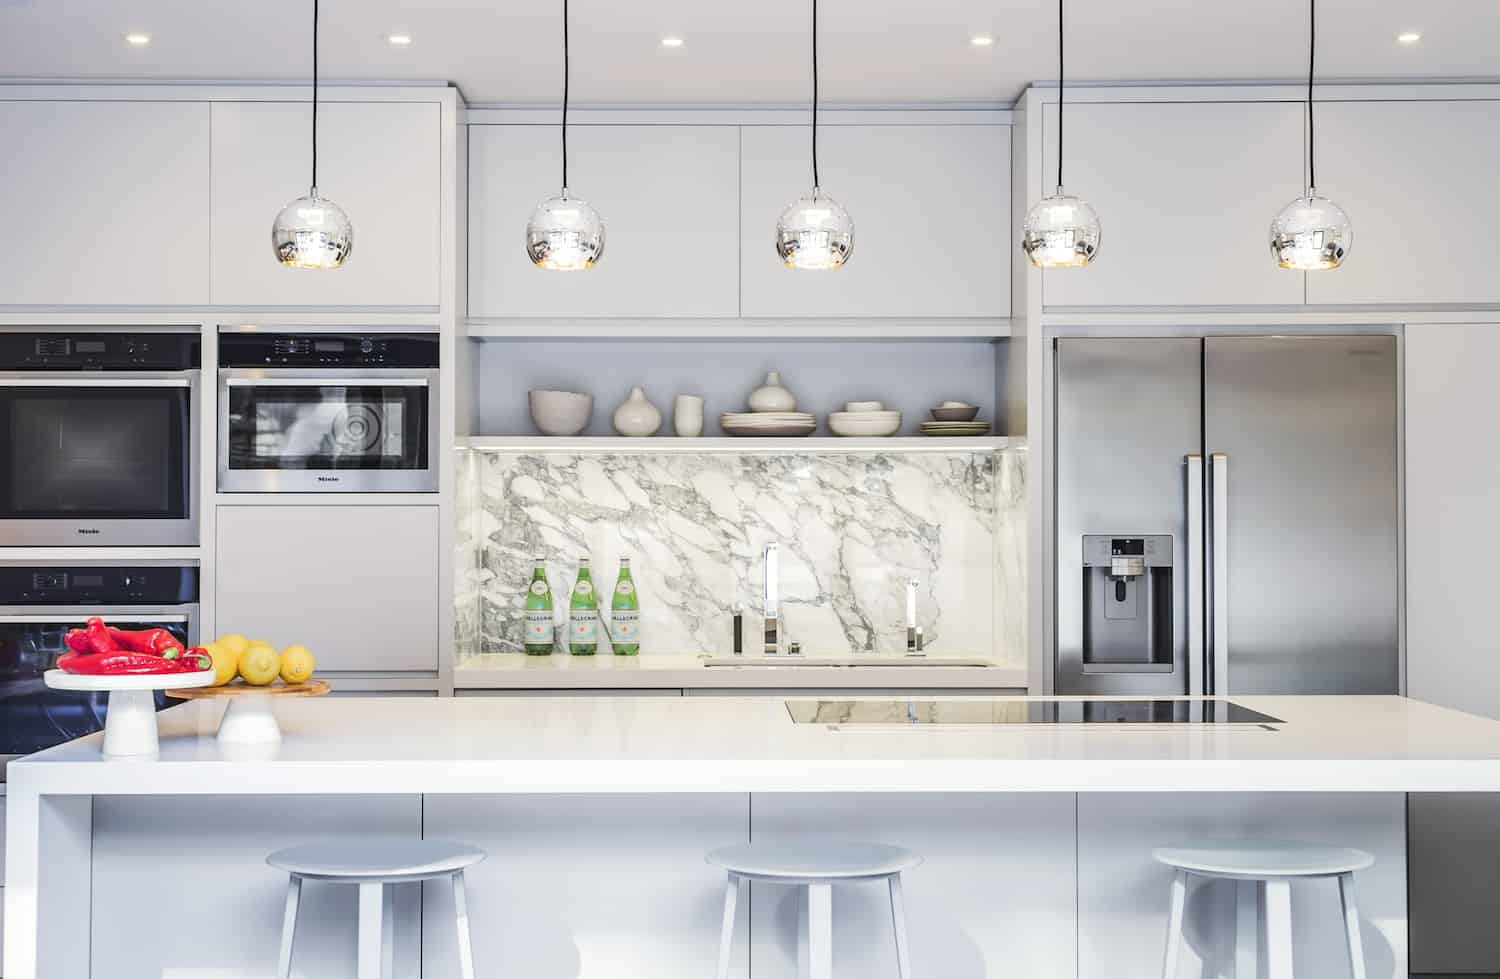 LLI Design put the new kitchen on the first floor. It's a modern white kitchen with an island. The marble backsplash is a nice touch. There is plenty of cabinet storage. Lighting is both recessed and pendant. I love this design.